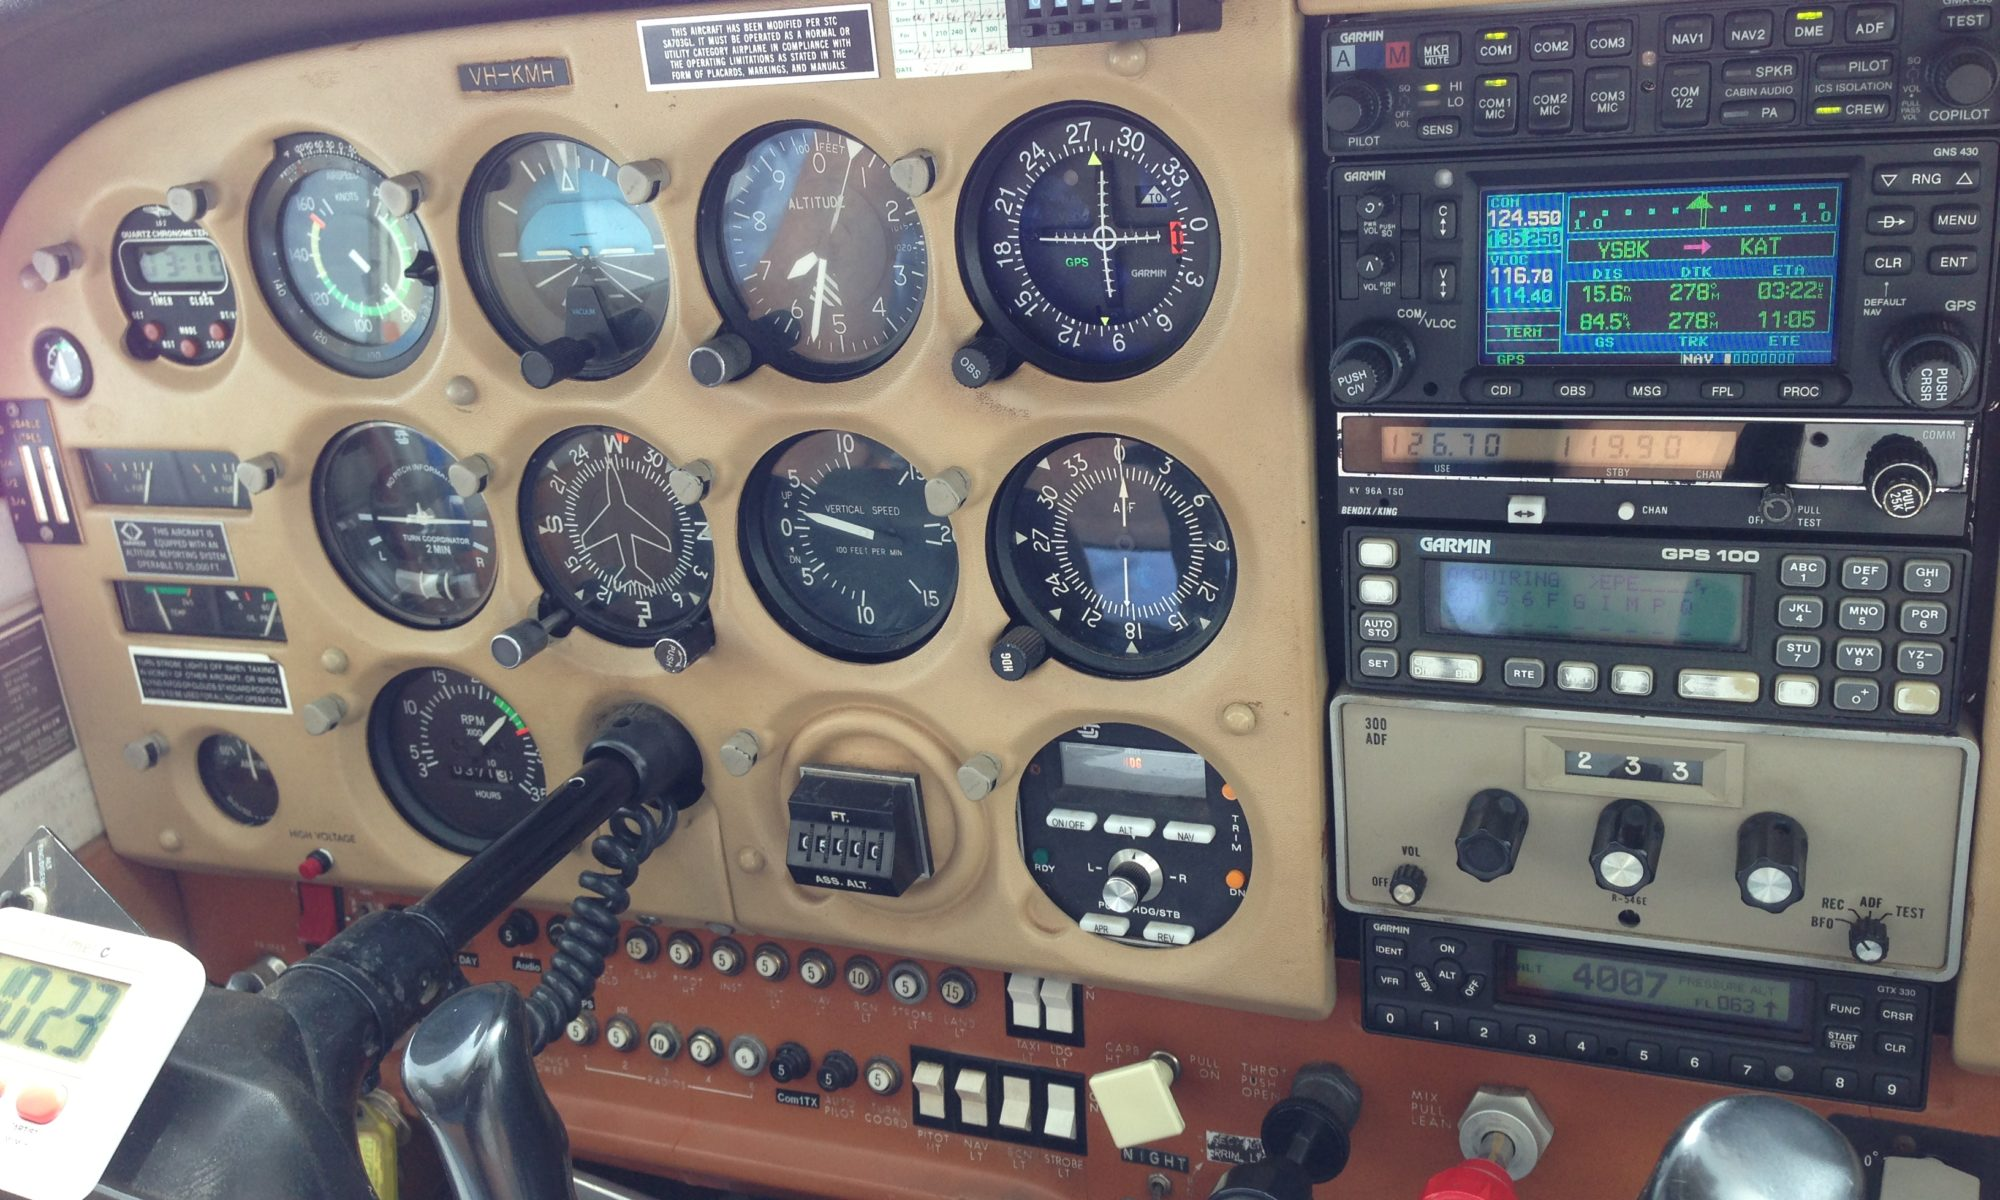 Cessna 172 instrument panel on KMH